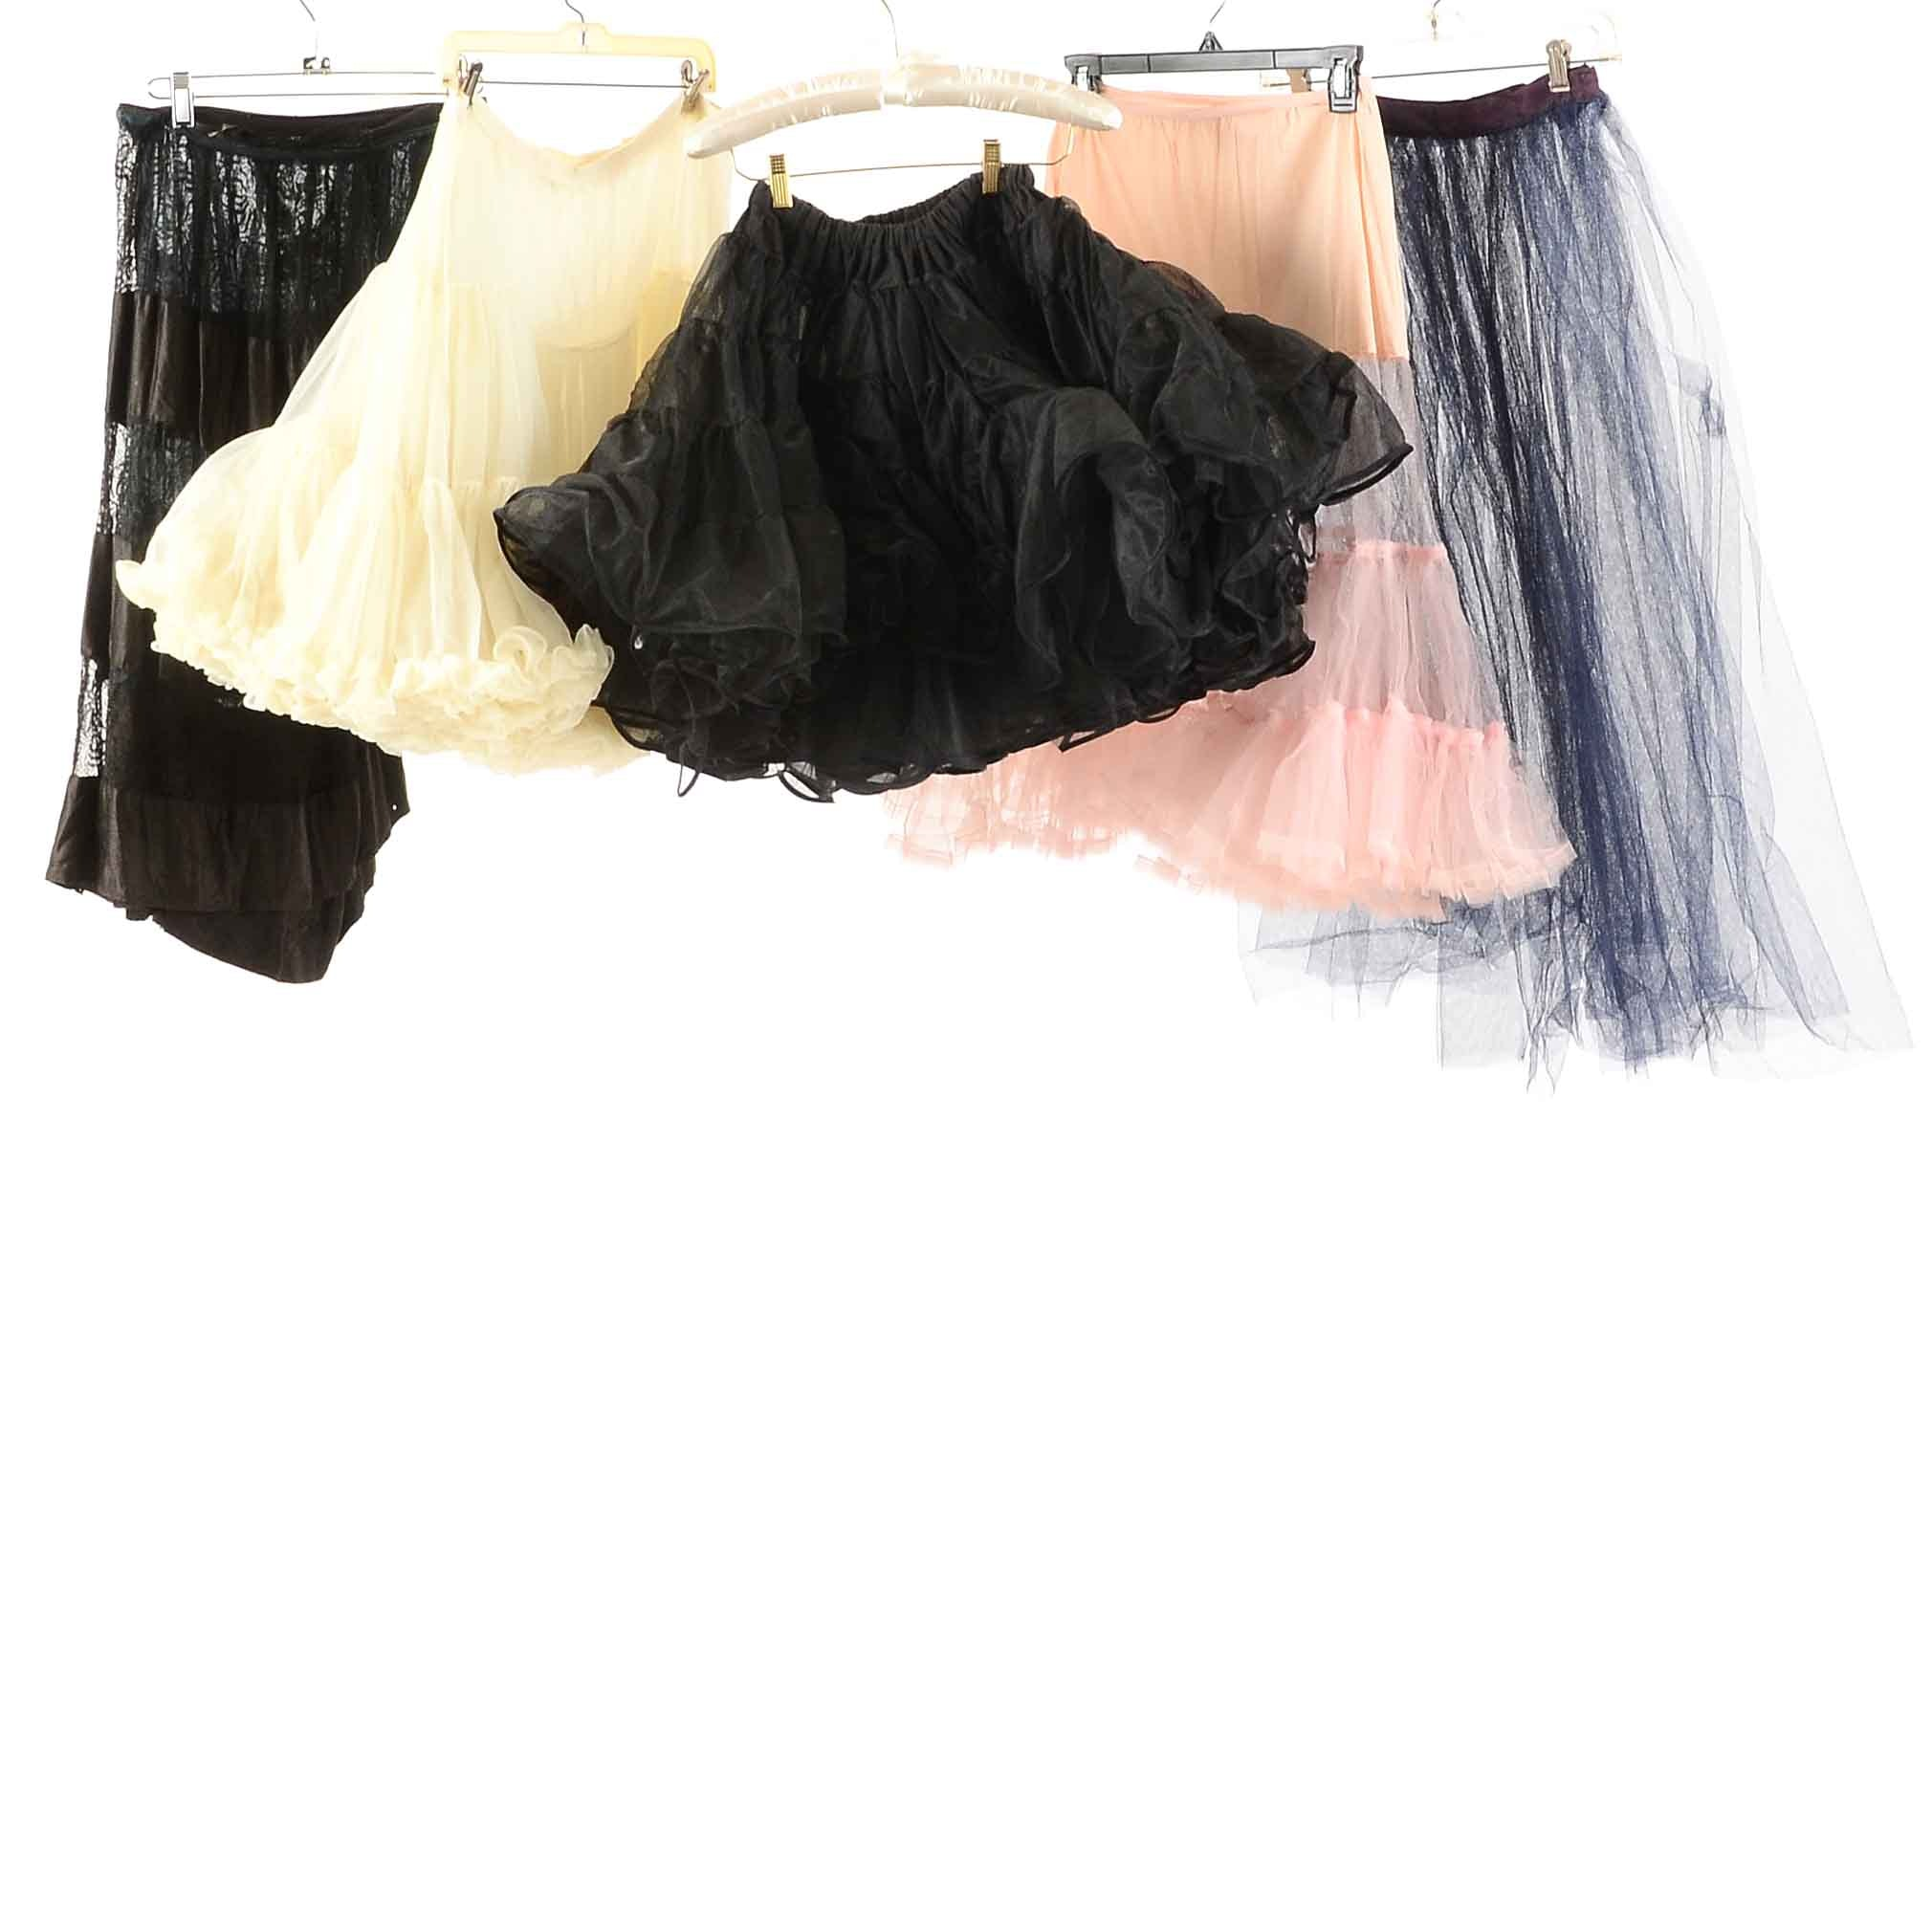 Collection of Vintage Petticoats